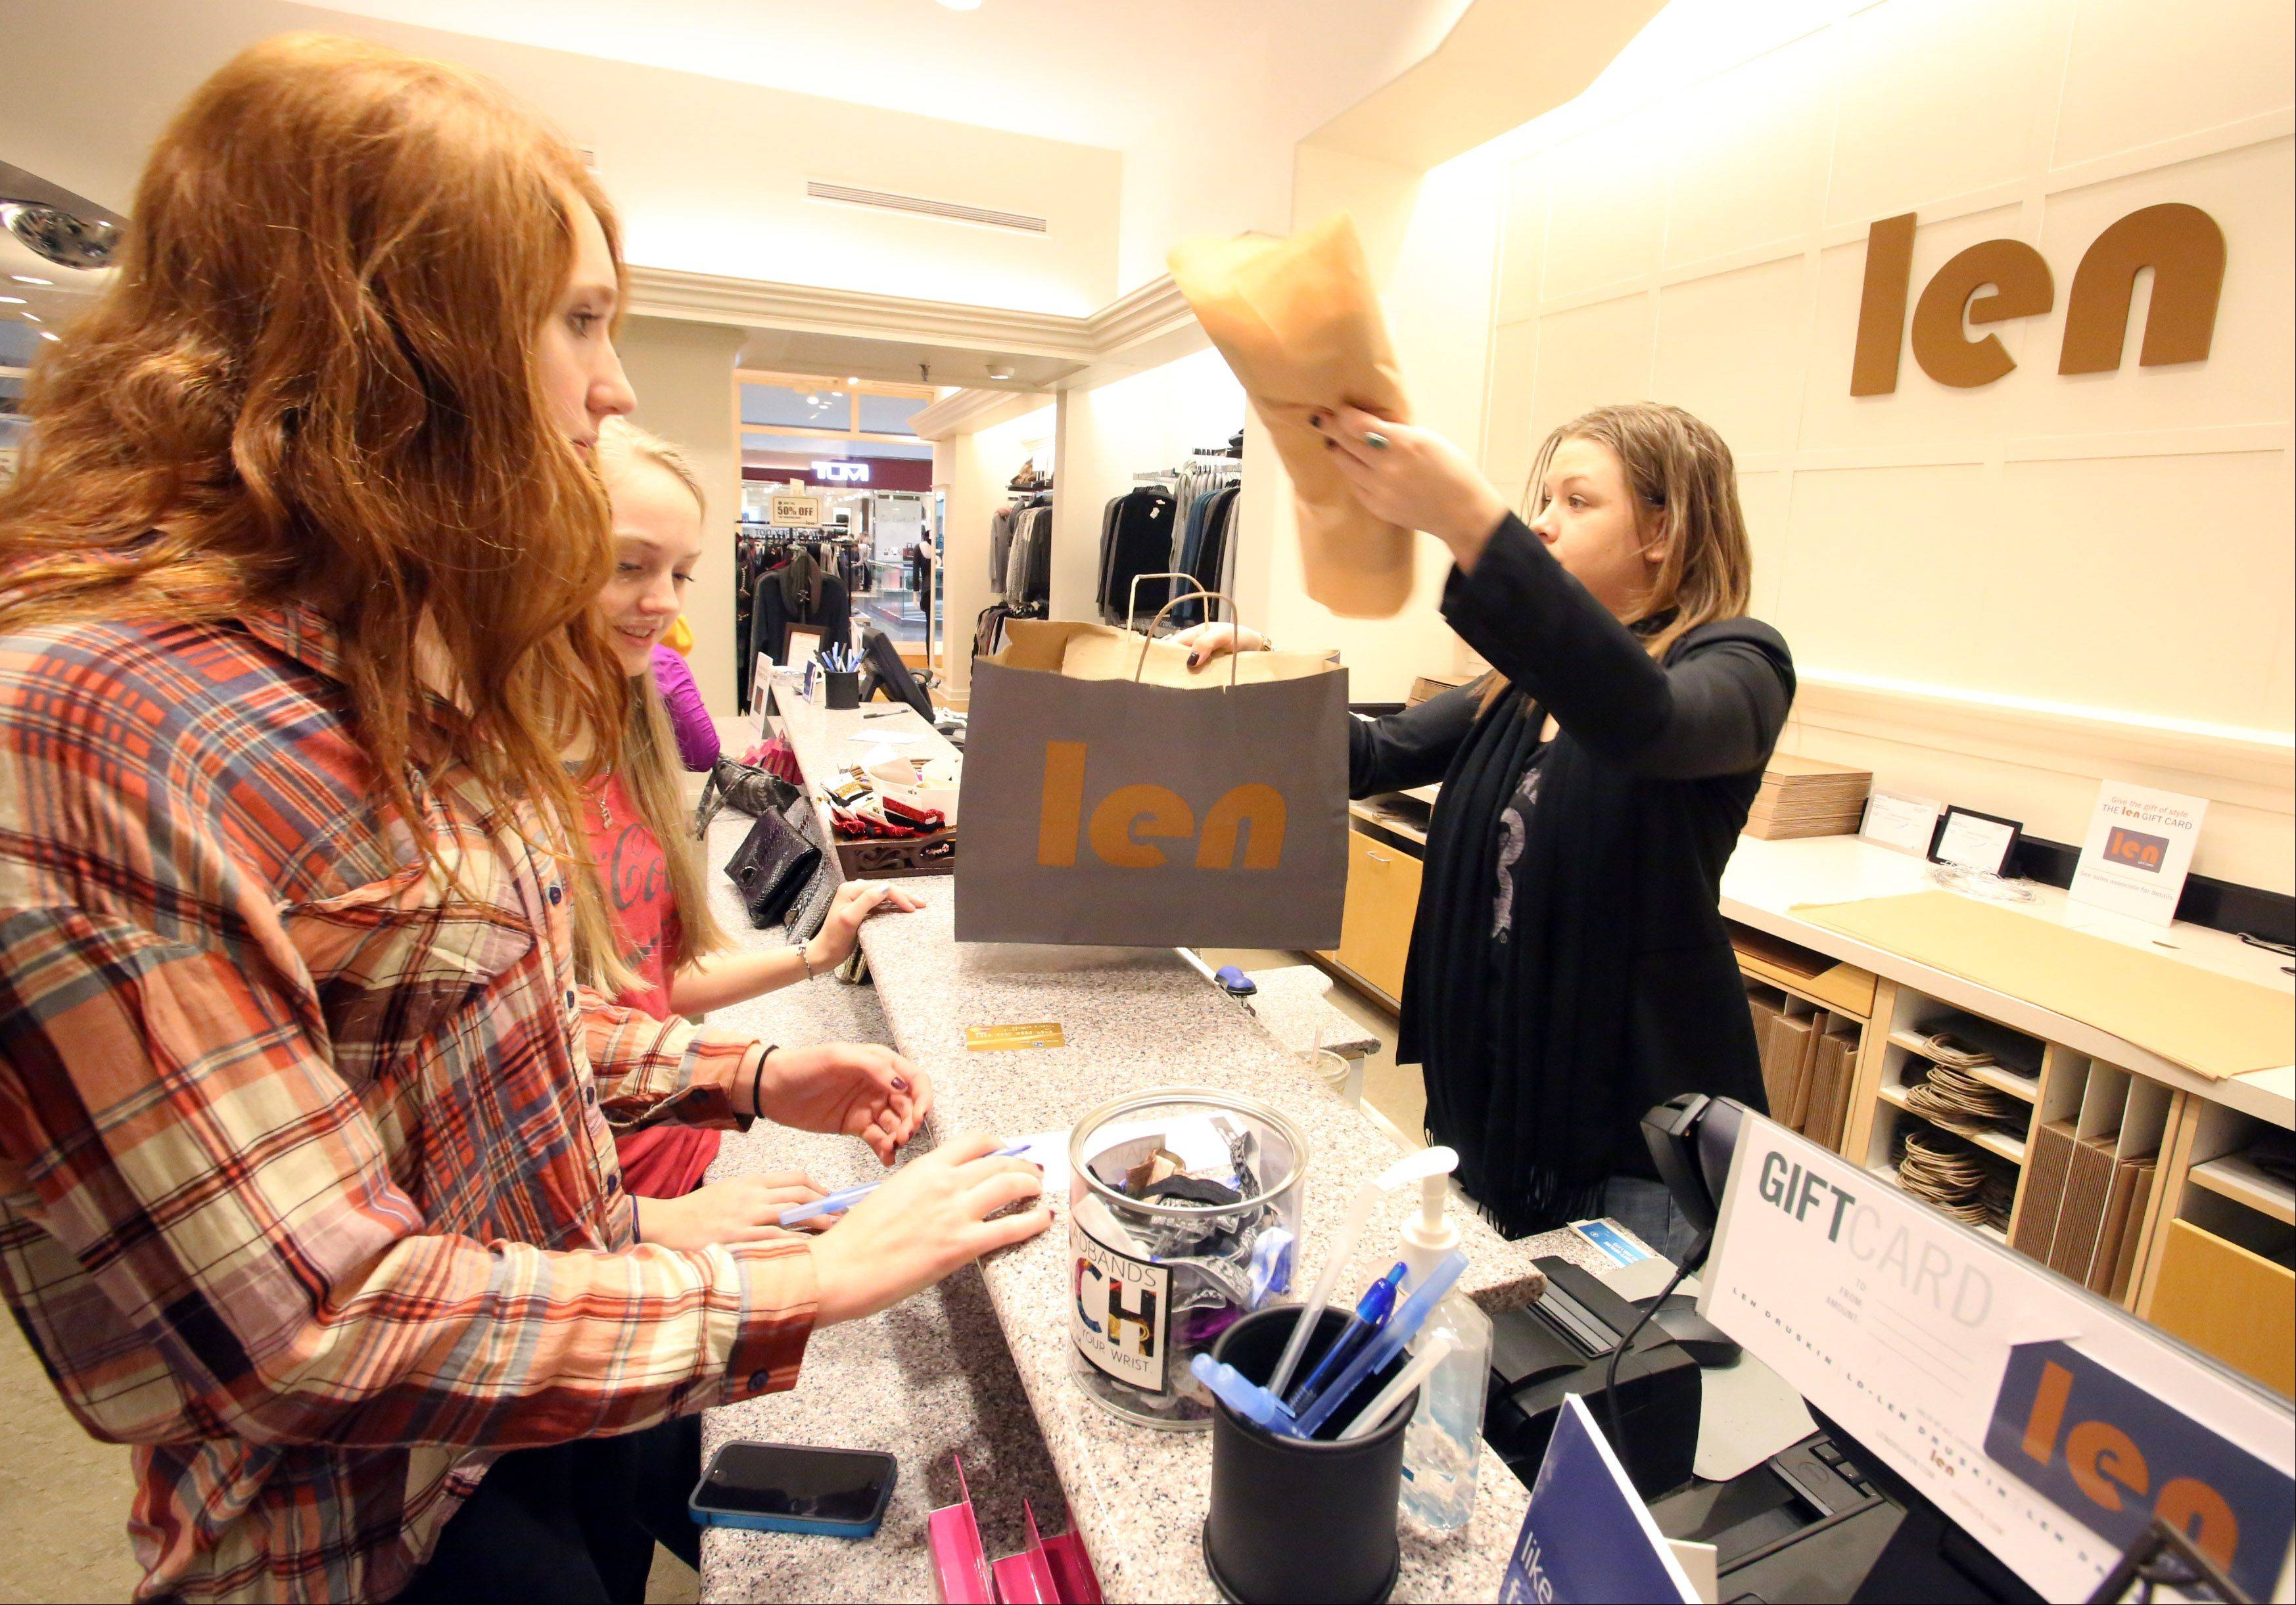 Morgan Cumpher, 17, foreground, and Emily Bloom, 16, left, purchase clothing items from sales representative Aimee Kriegl Friday at Len at Woodfield Mall in Schaumburg.